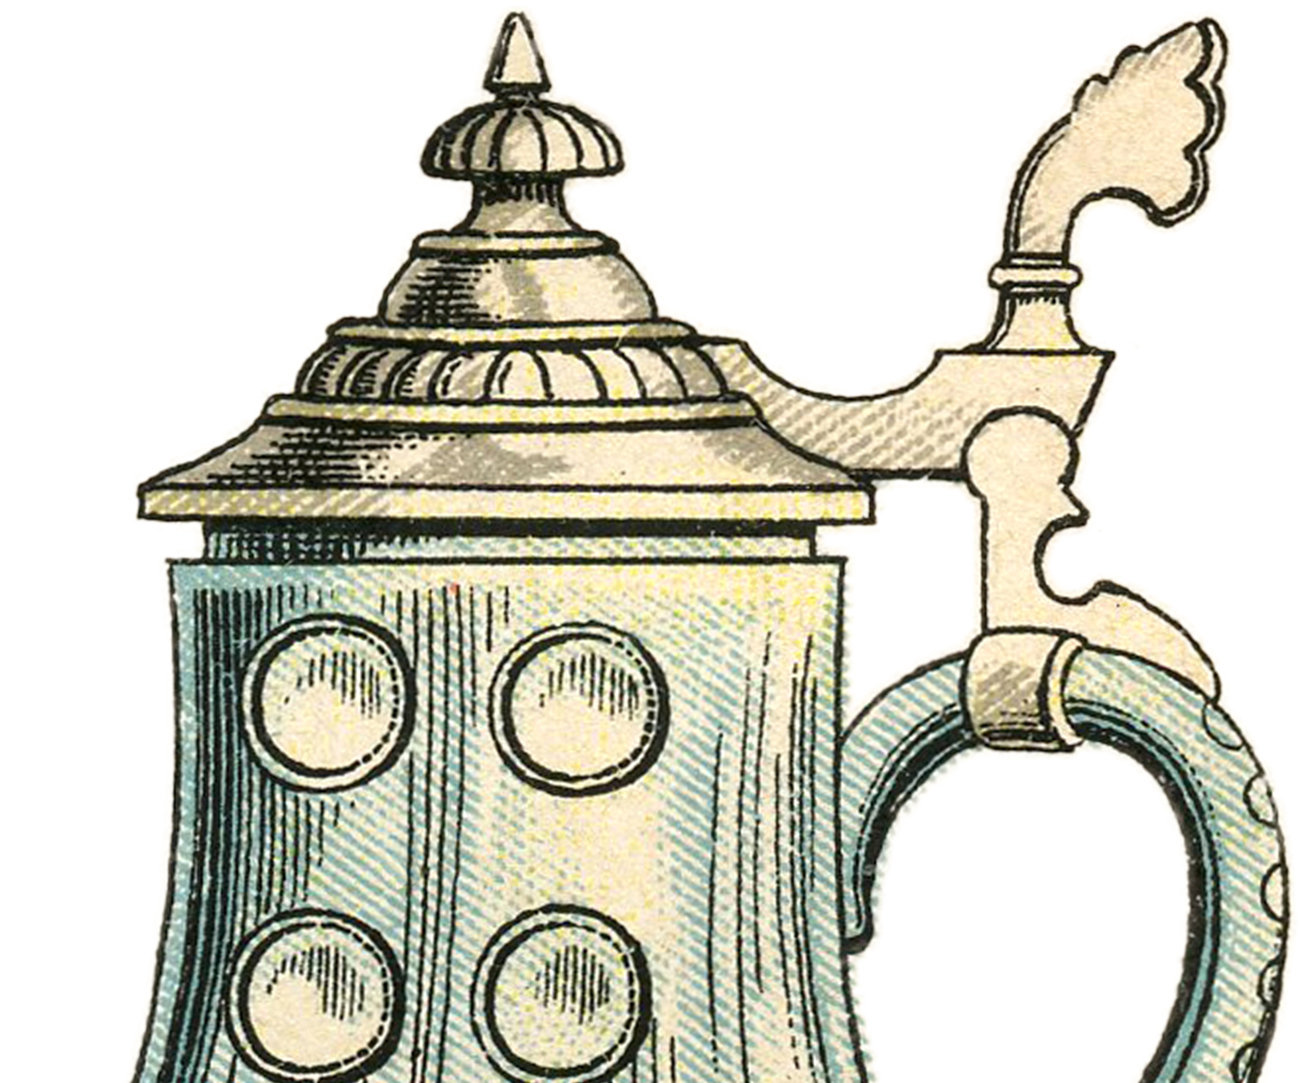 Public Domain Beer Stein Image - The Graphics Fairy